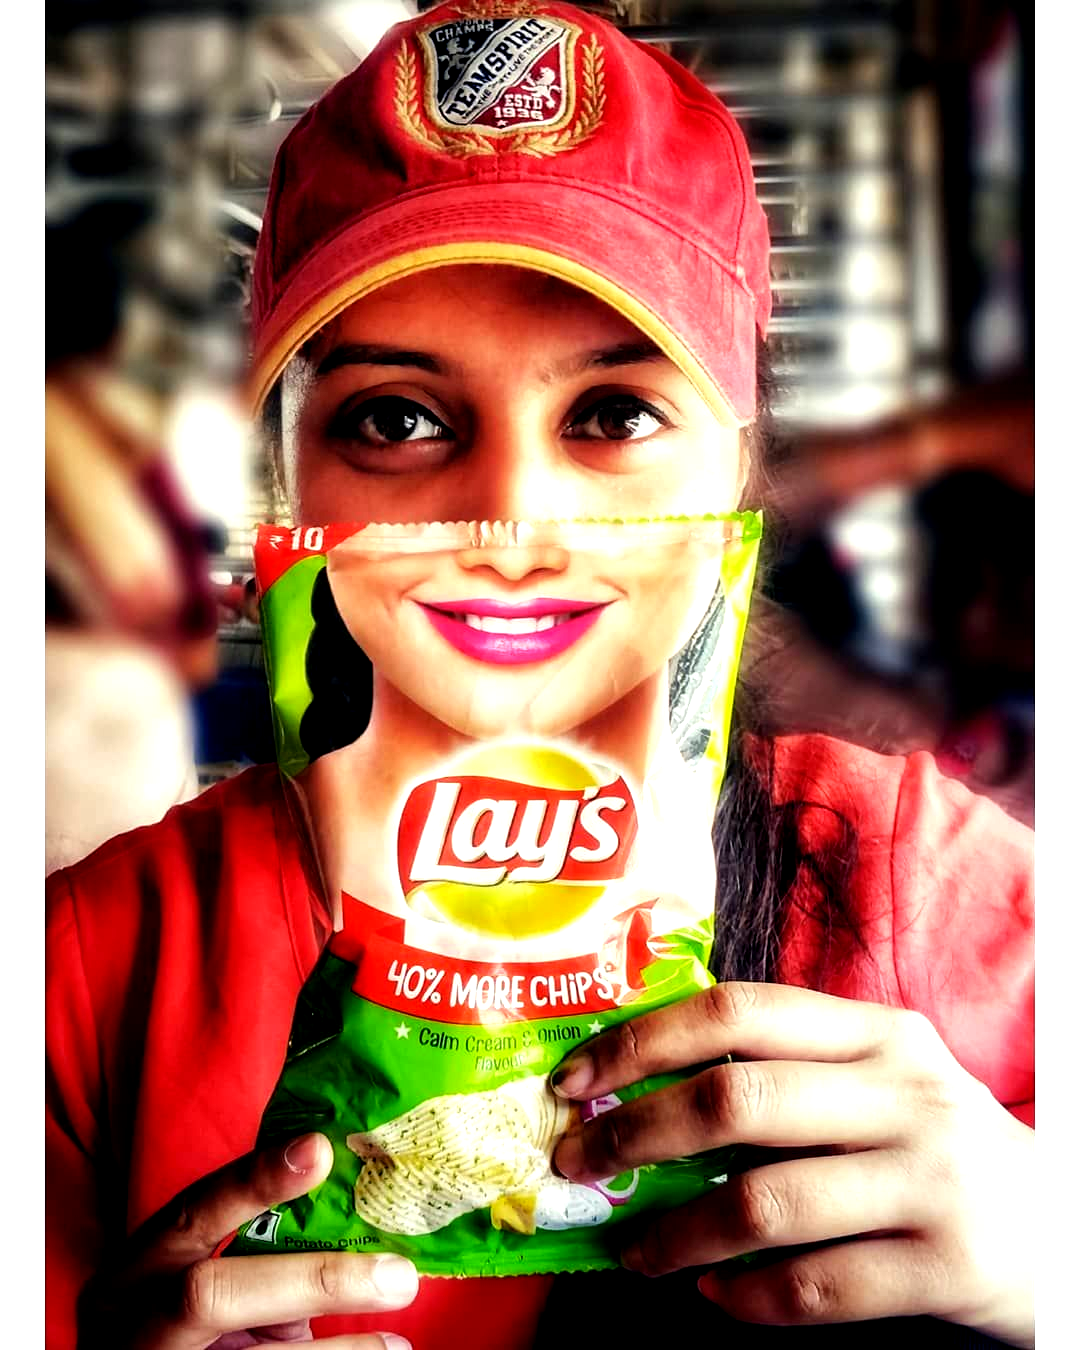 Halloween costumes Halloween costumes women DIY Halloween makeup scary makeup ideas gift idea gift for boyfriend gift for girlfriend gifts for men gifts   Memories Smile and throwback to some good times ! #smilewithlays #SmileDekeDekho #sharewithsmiles #repost @lays_india #lays #laysindia #favorite #childhoodmemories #smile #spreadingsmiles #creative #diy #happiness #handcrafted #gifts #happy halloween makeup